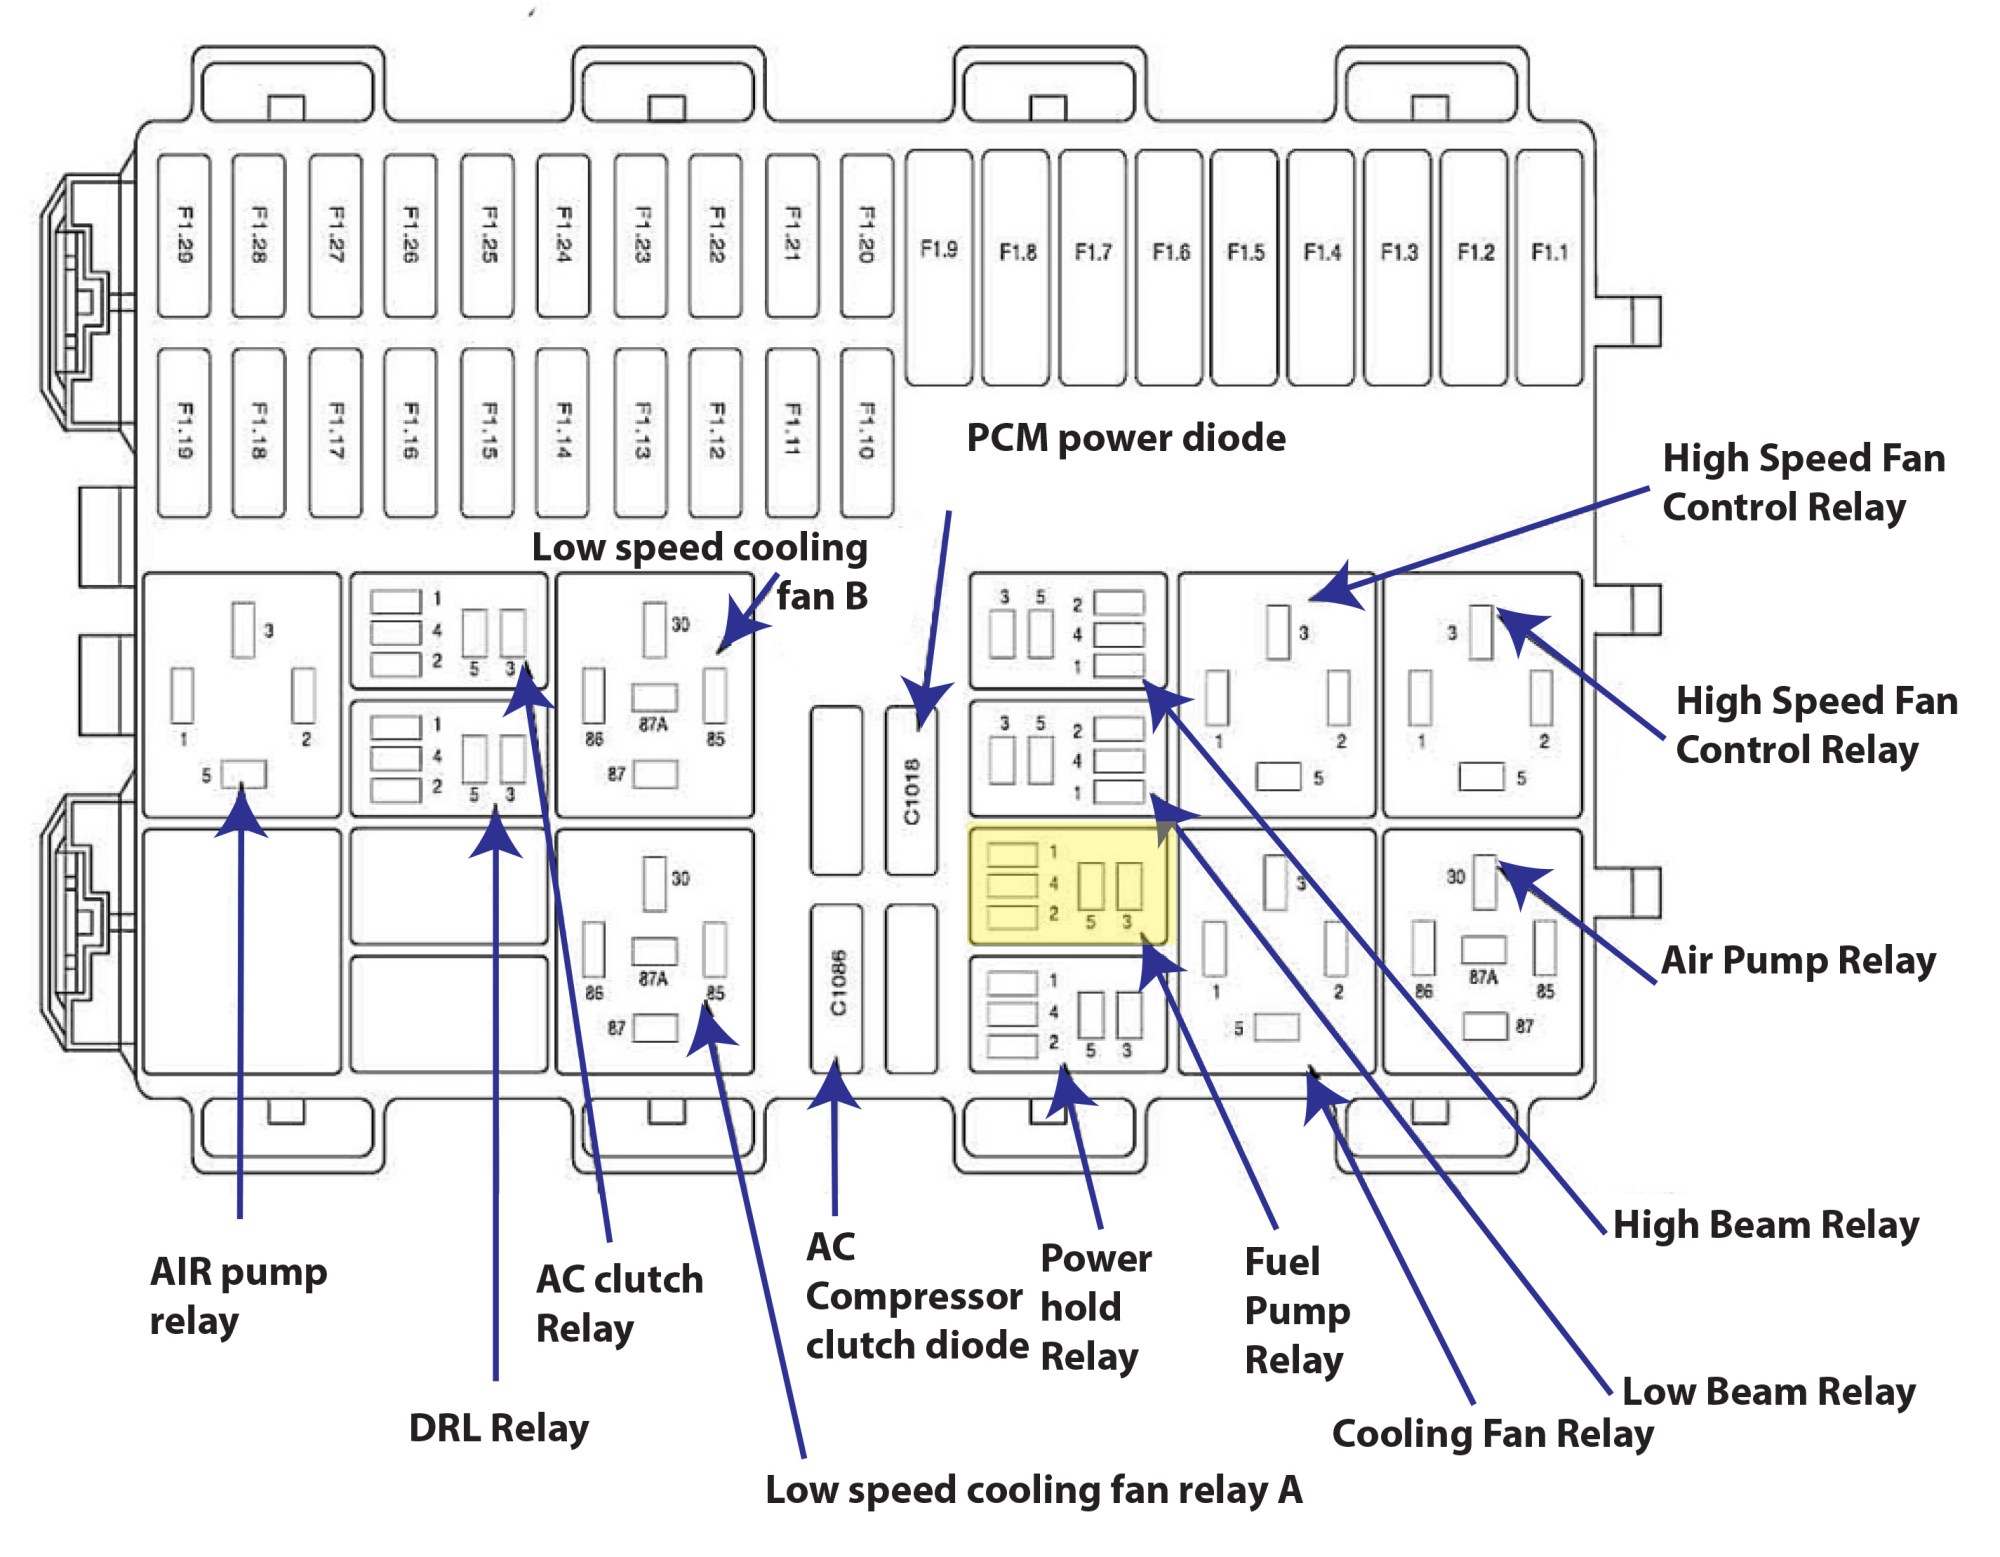 hight resolution of fuse box diagram as well ford focus fuse box diagram on 2001 ford diagram as well on diagram moreover 2002 chevy impala fuse